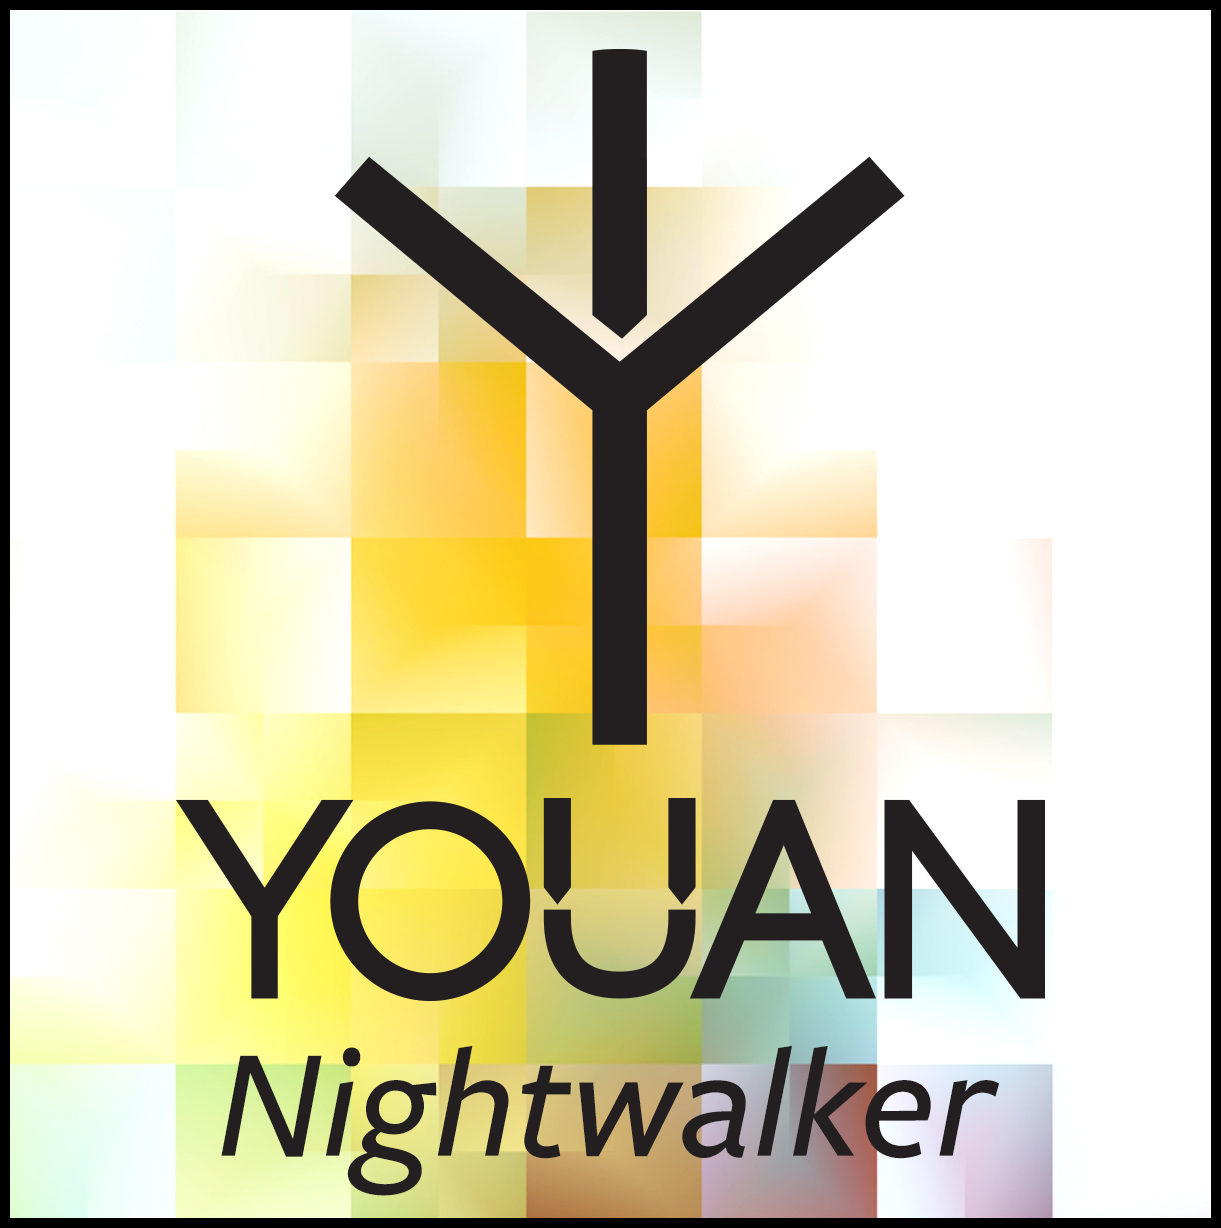 YOUAN_Nightwalker_download_3